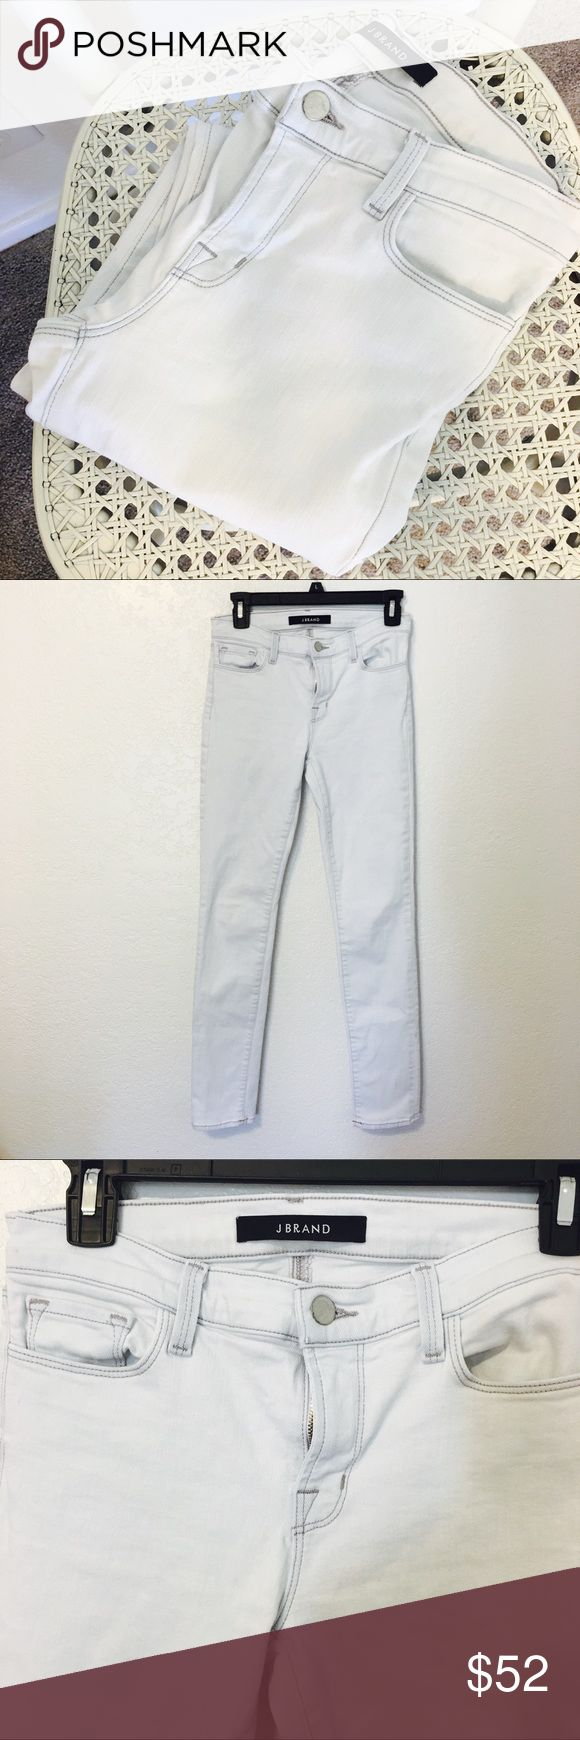 "J BRAND Mid Rise Rail in Frostbite So cute! Light wash ""frostbite"" jeans by J brand. Excellent condition size 27. J Brand Jeans"